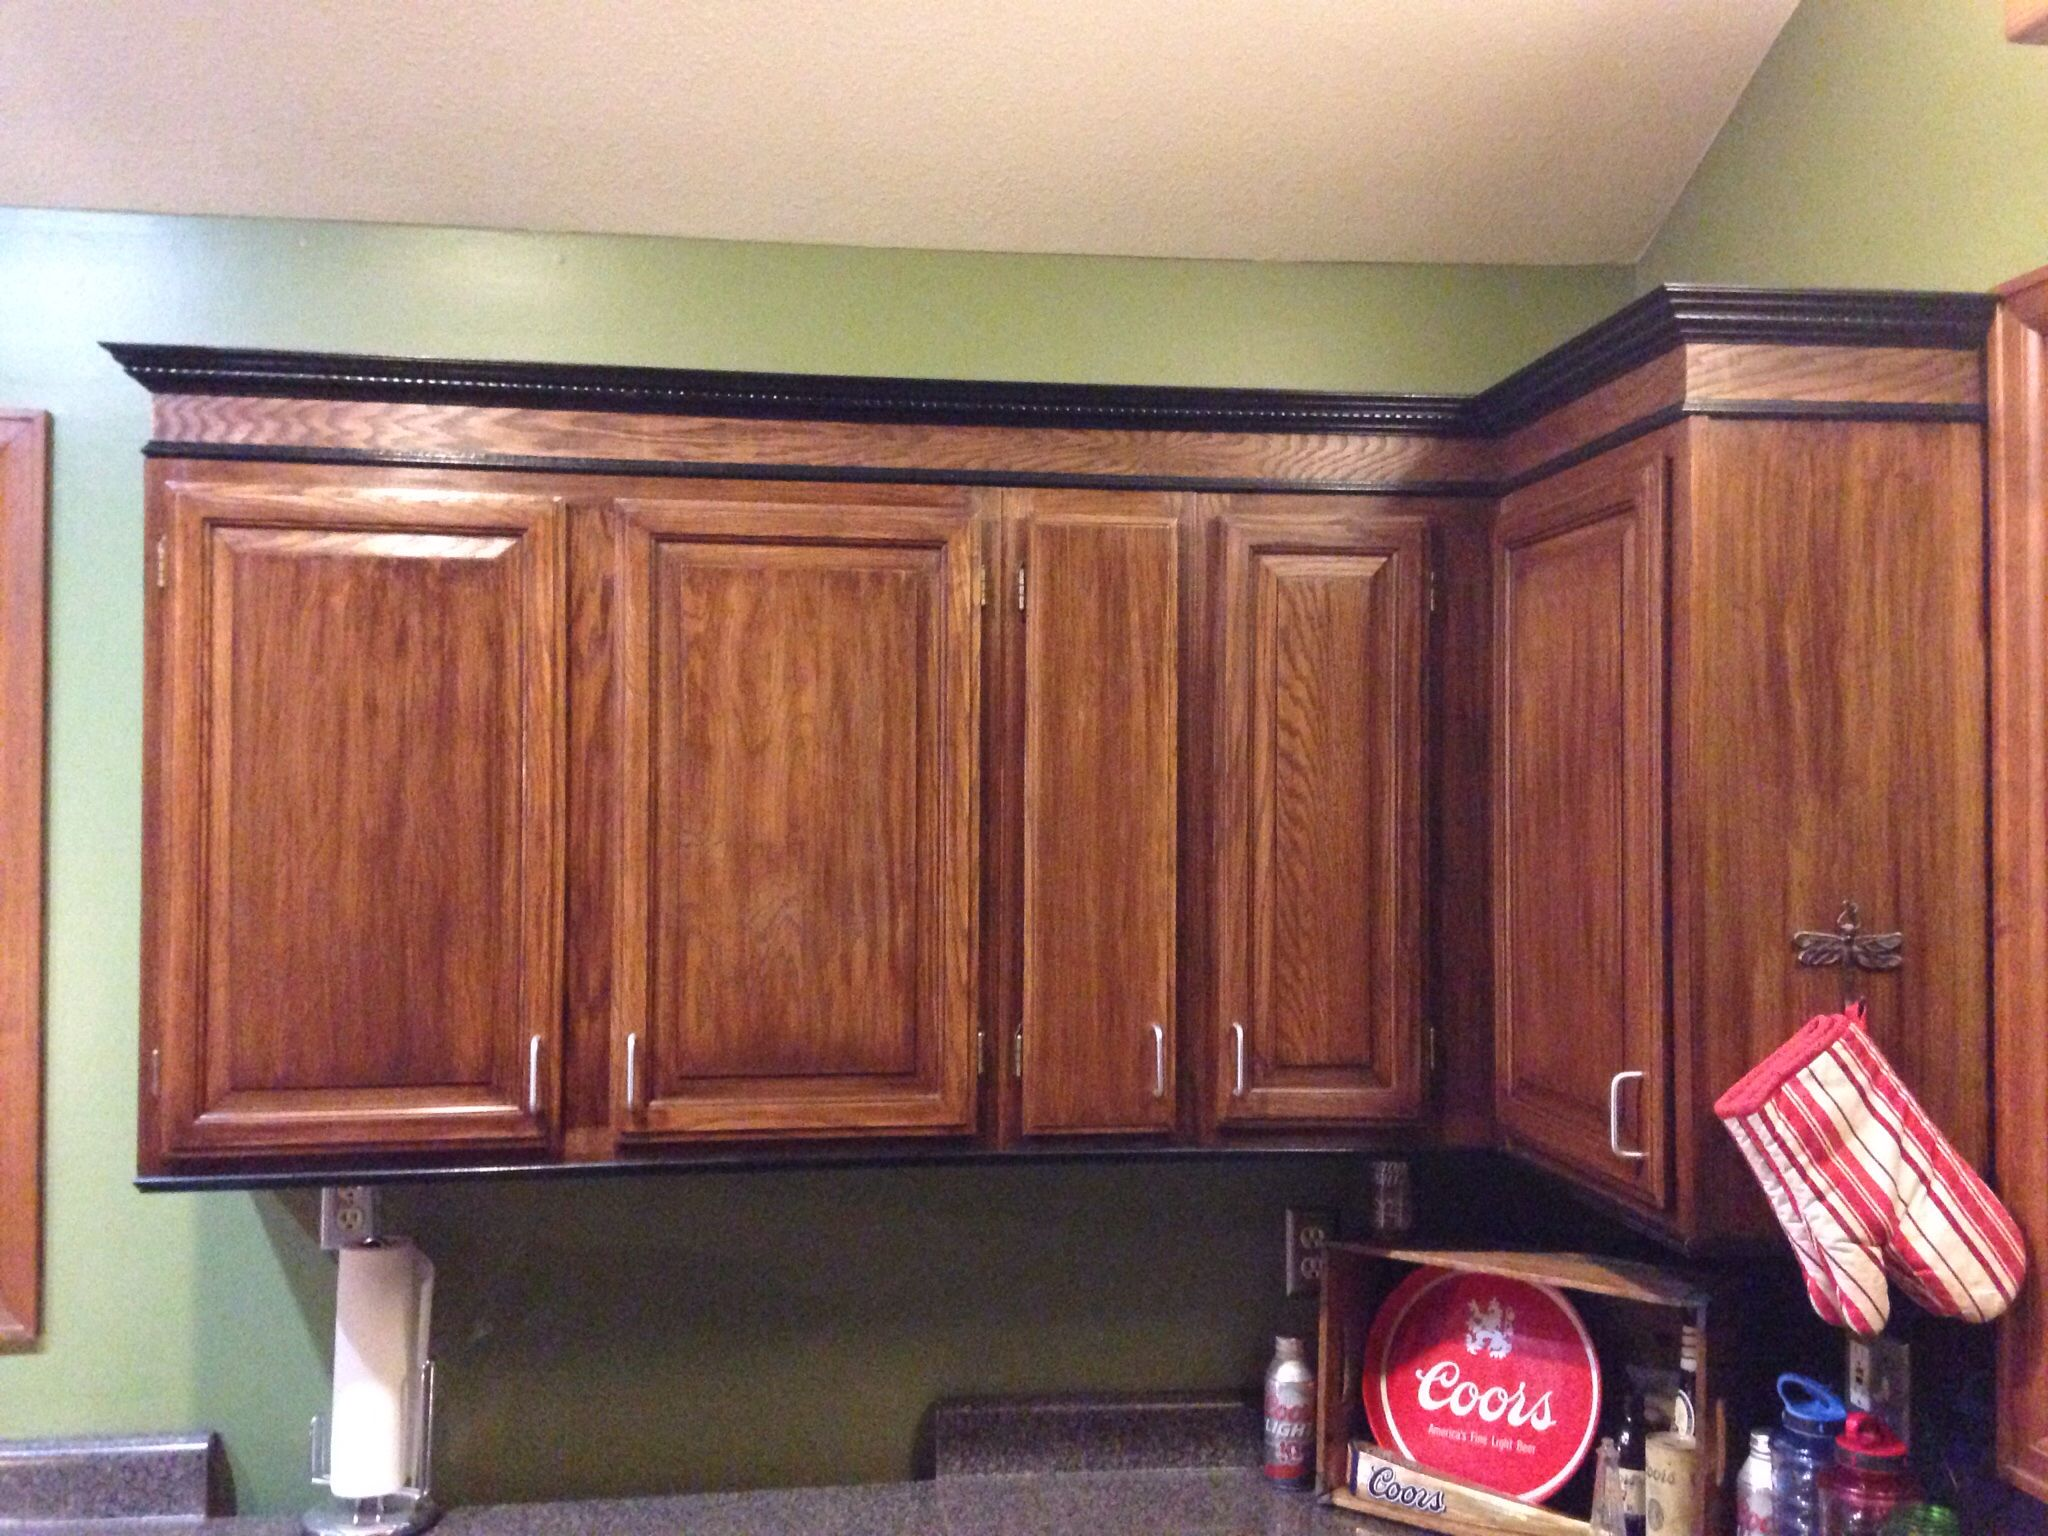 Oak Kitchen Cabinets Dark Stain Just Stained The Honey Oak Cabinets Darker And Added Trim